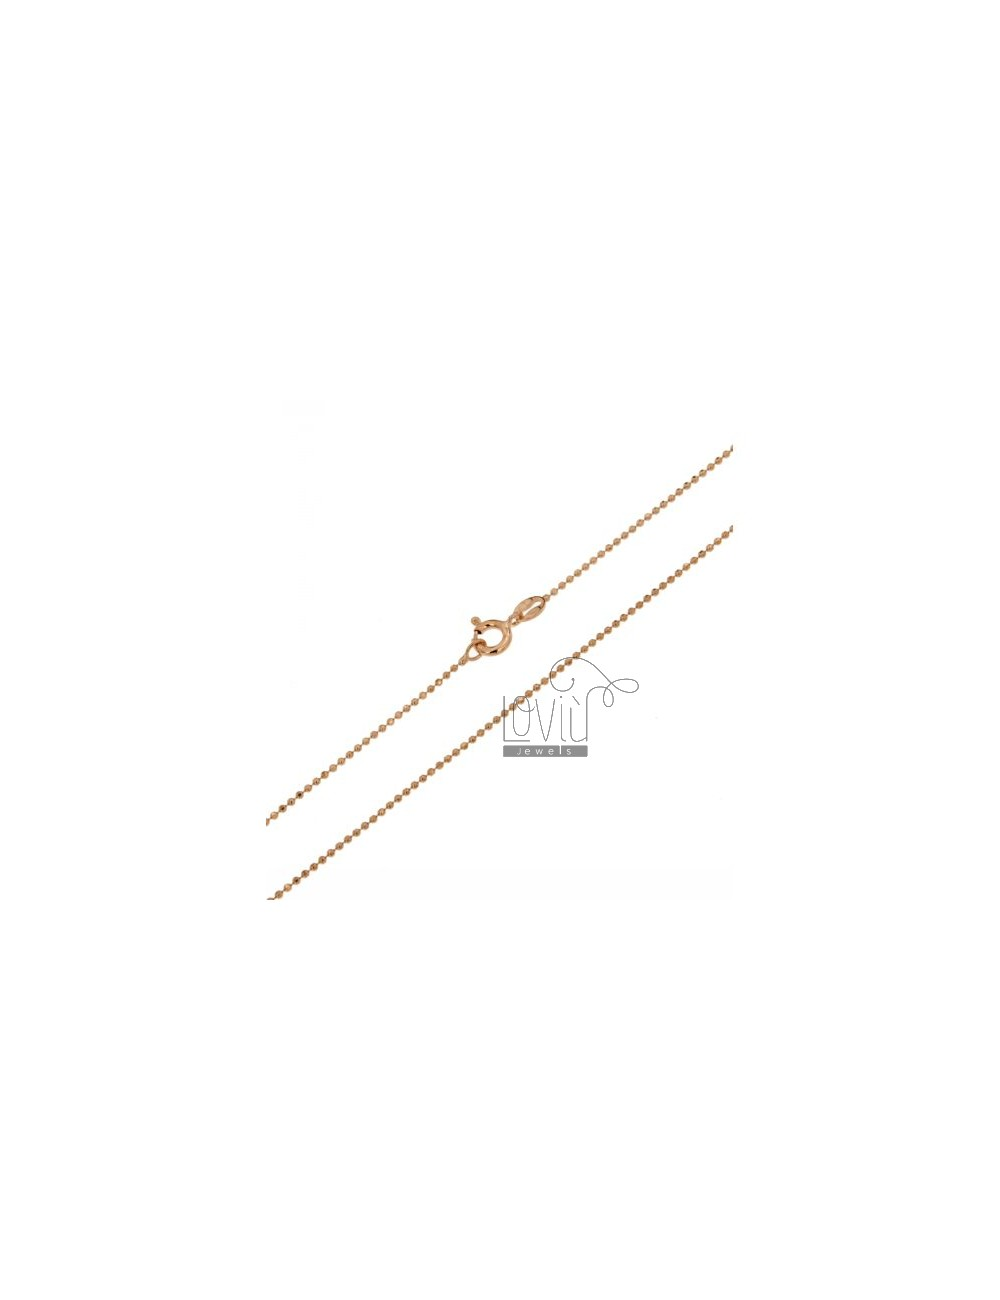 ROSE GOLD PLATED BALL CHAIN &8203&8203faceted 1.2 MM 40 CM IN TIT AG 925